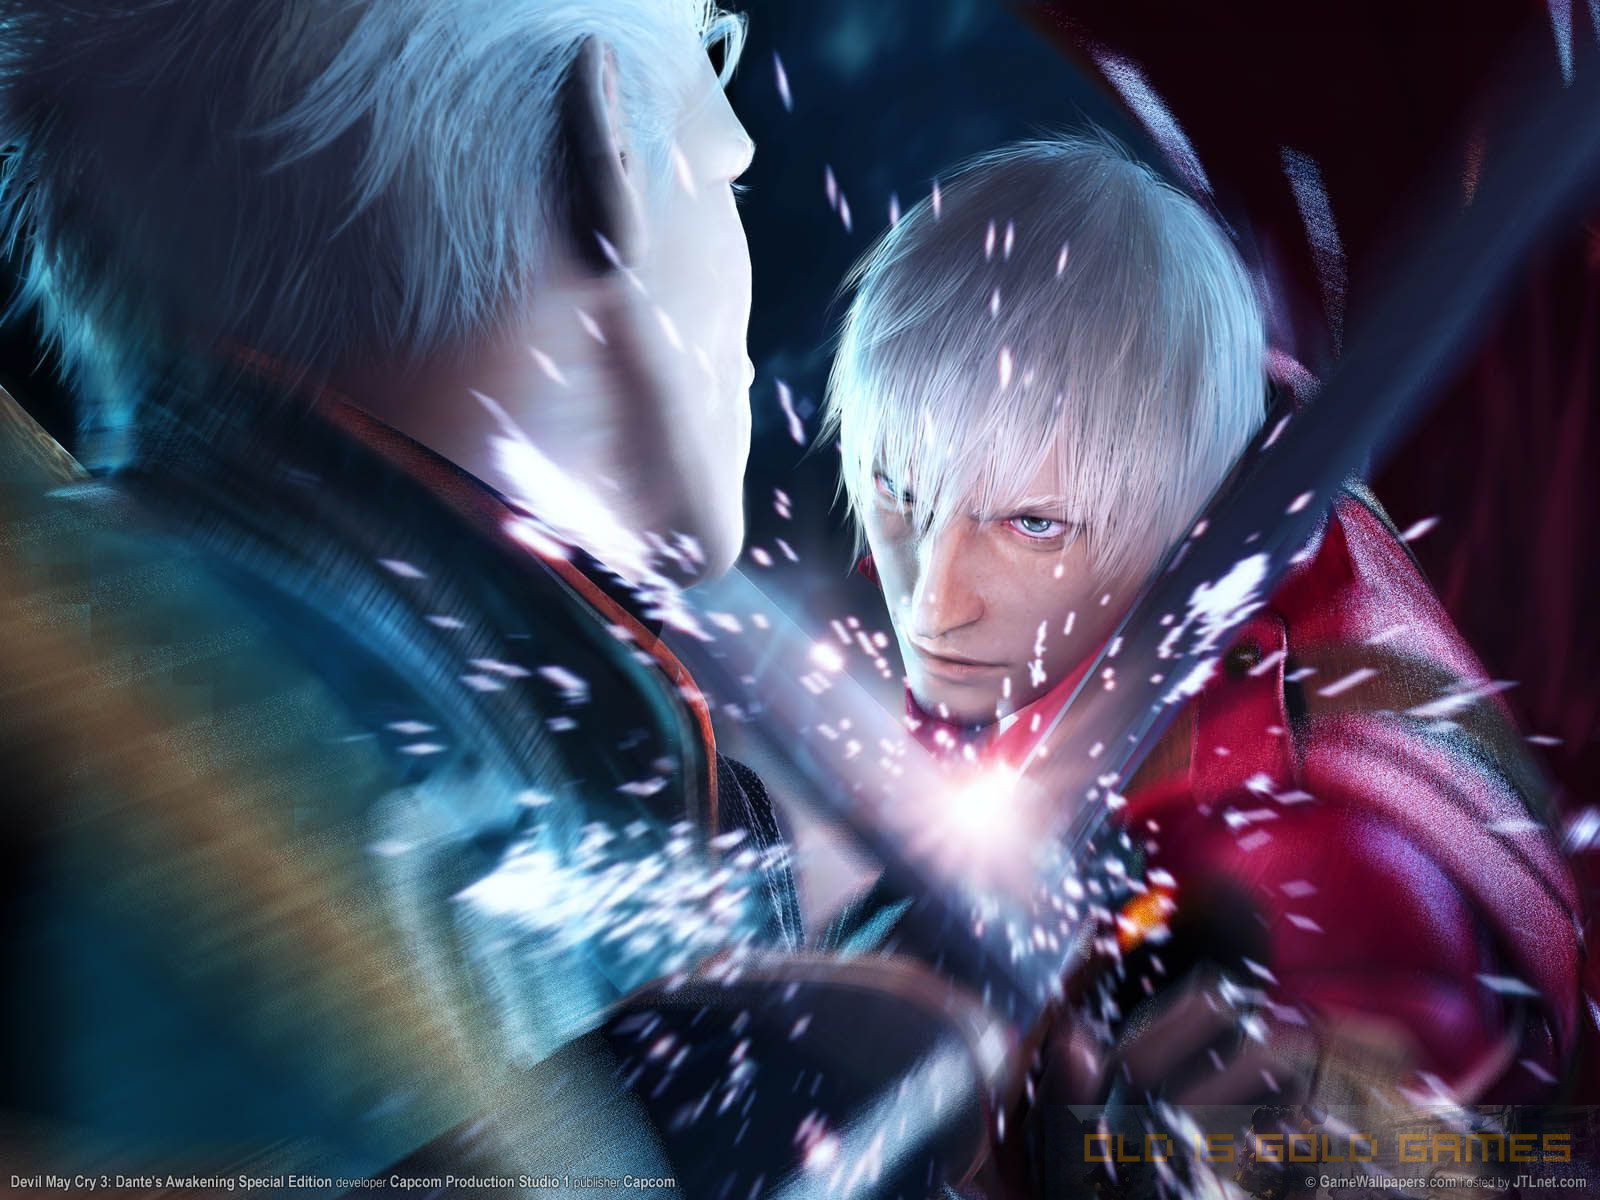 Devil May Cry 3 Dante's Awakening Features